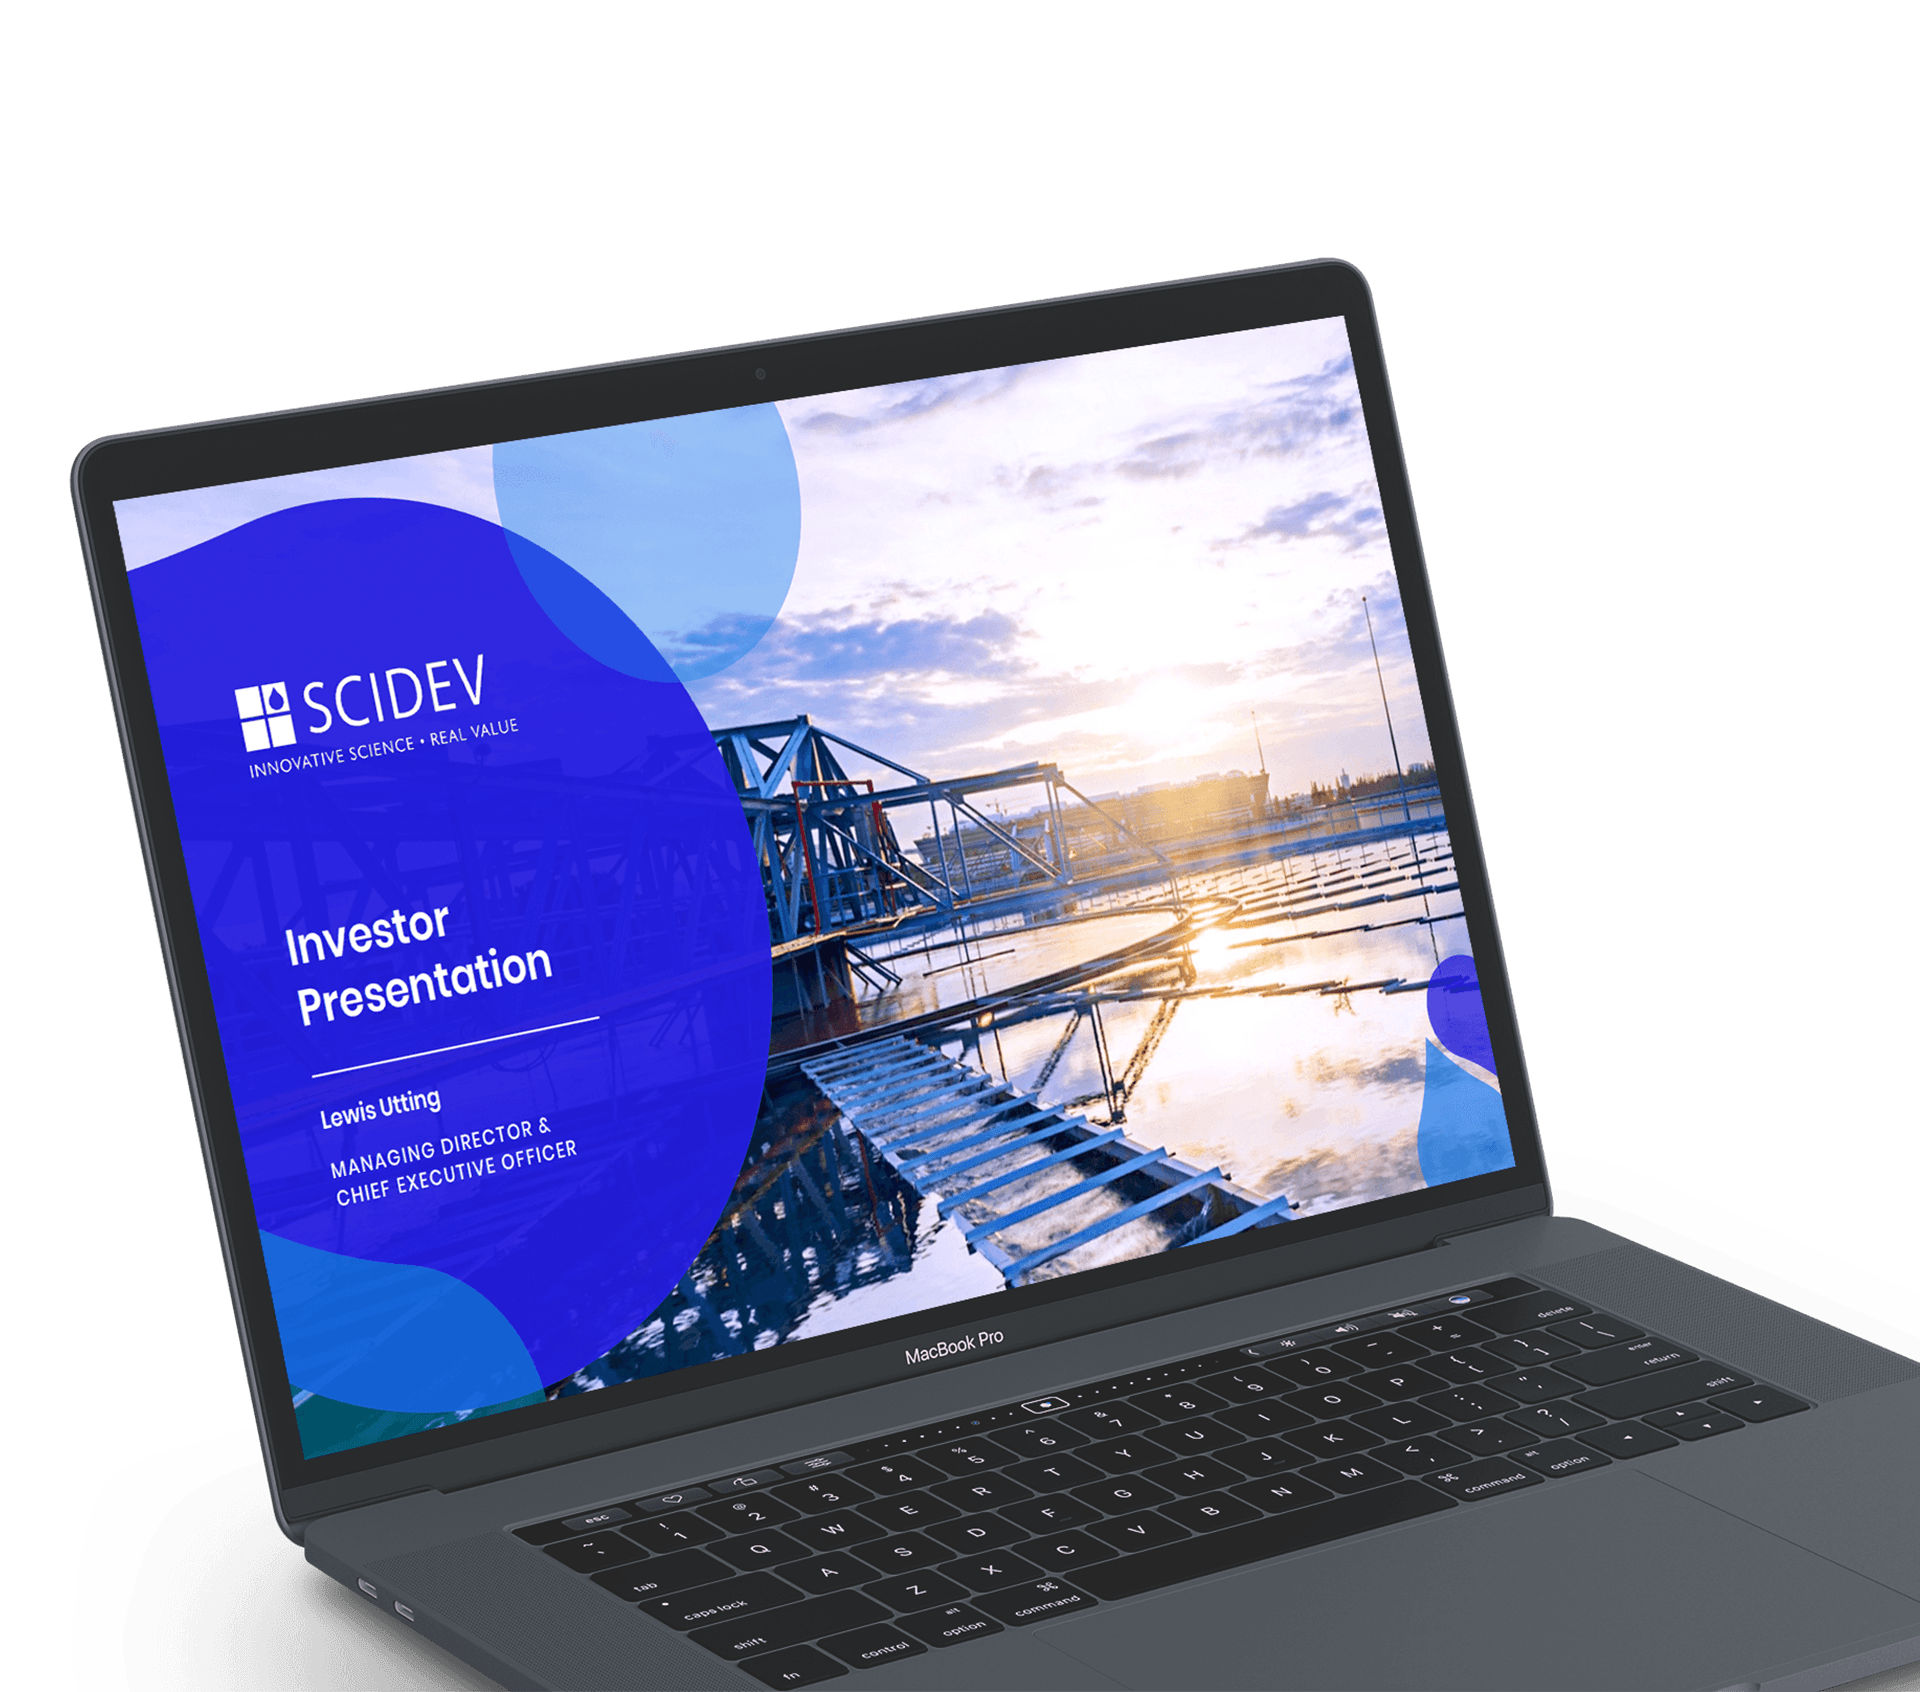 Mockup of a presentation on a laptop after it has been designed by Persuaders